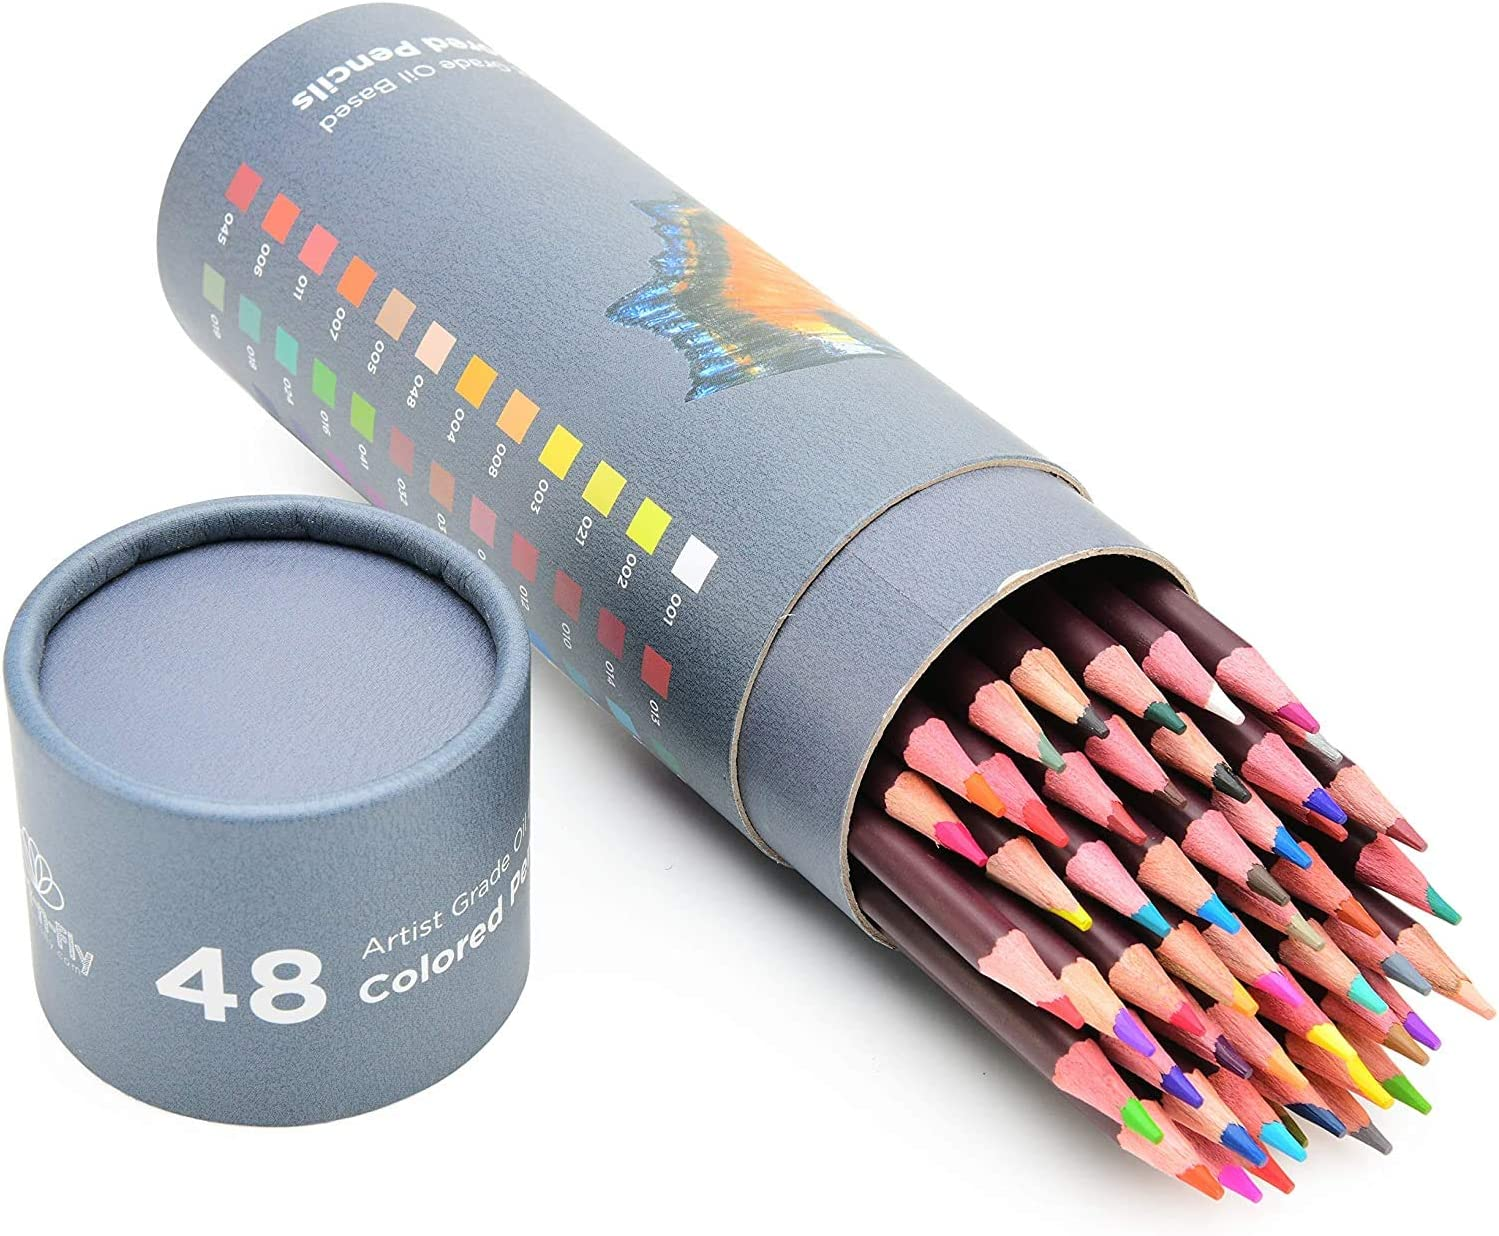 48 Professional Oil Based Kansas Online limited product City Mall Colored S Pencils Artist for Including